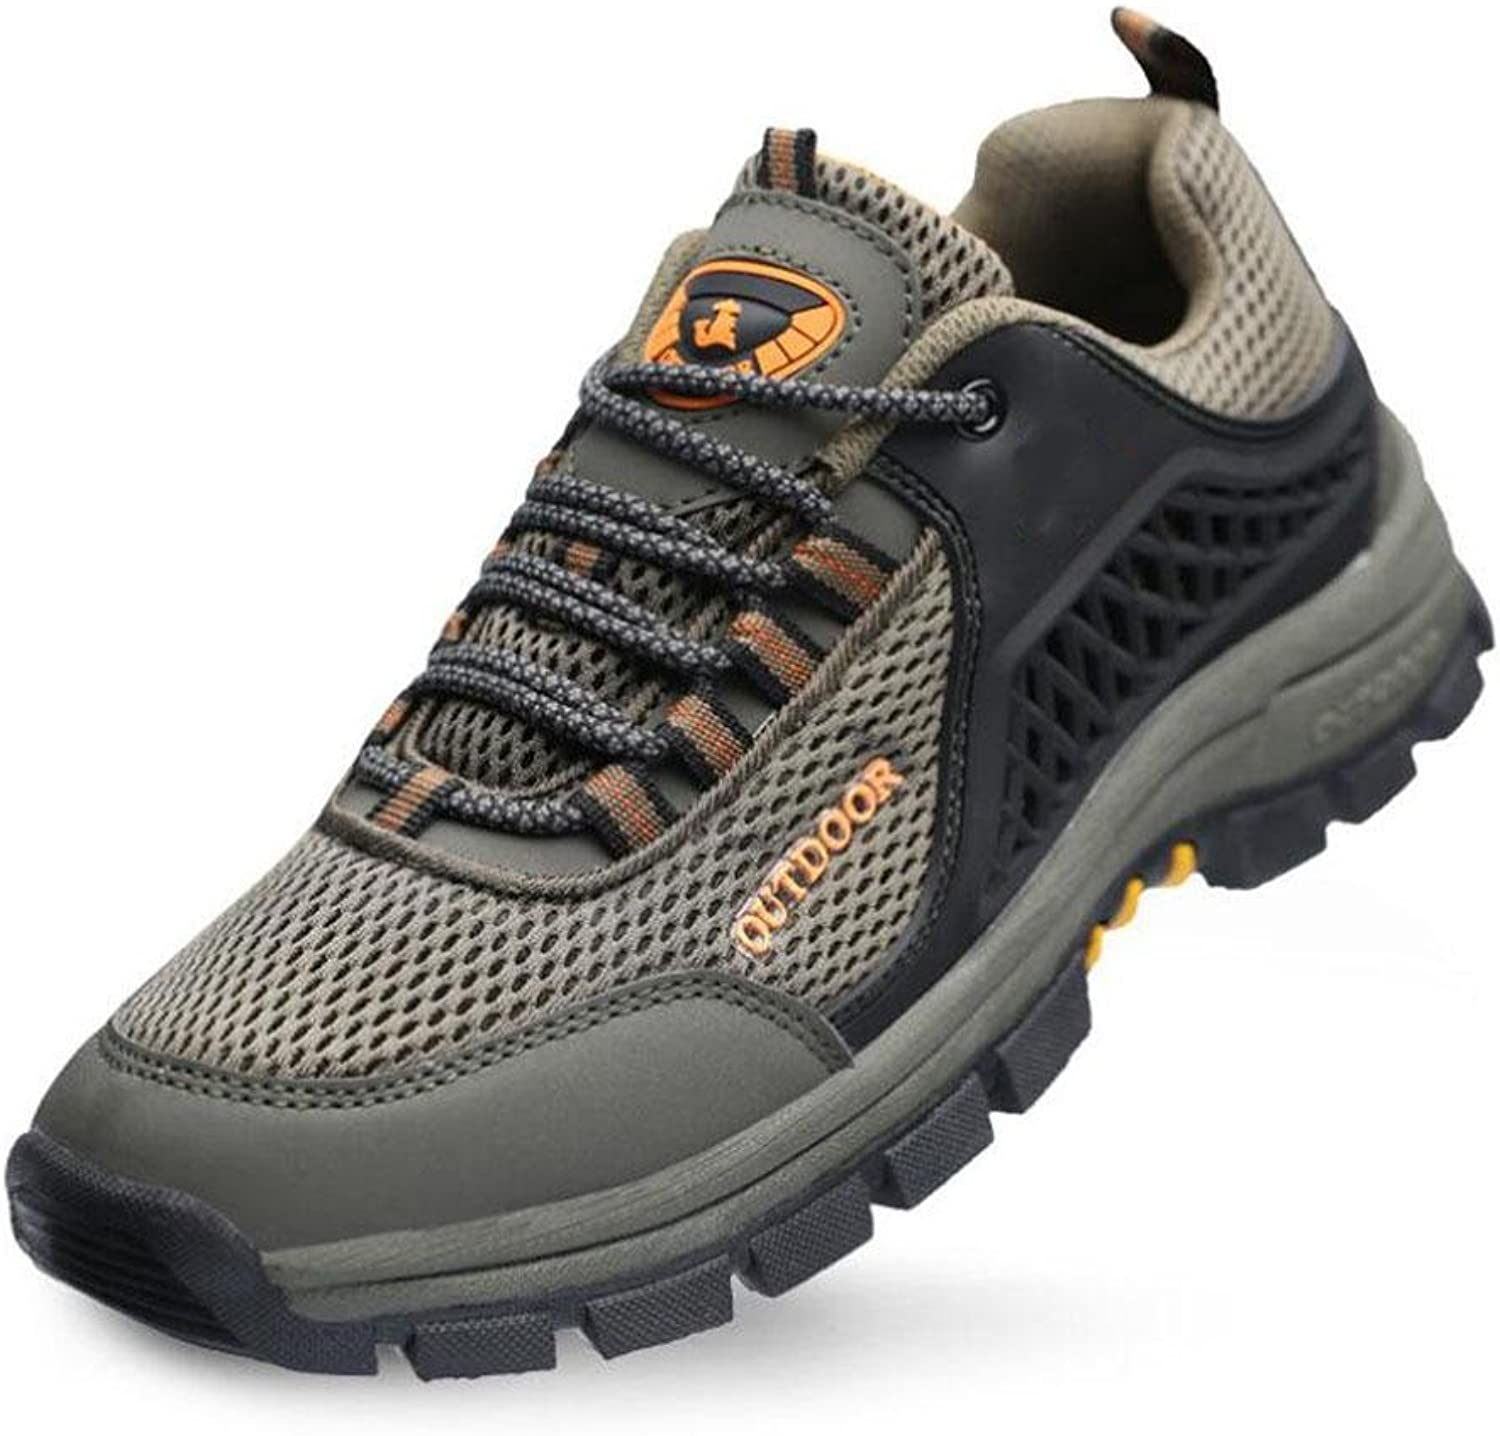 Z&HX sportsOutdoor sports shoes breathable net shoes anti - skid walking shoes leisure hiking shoes